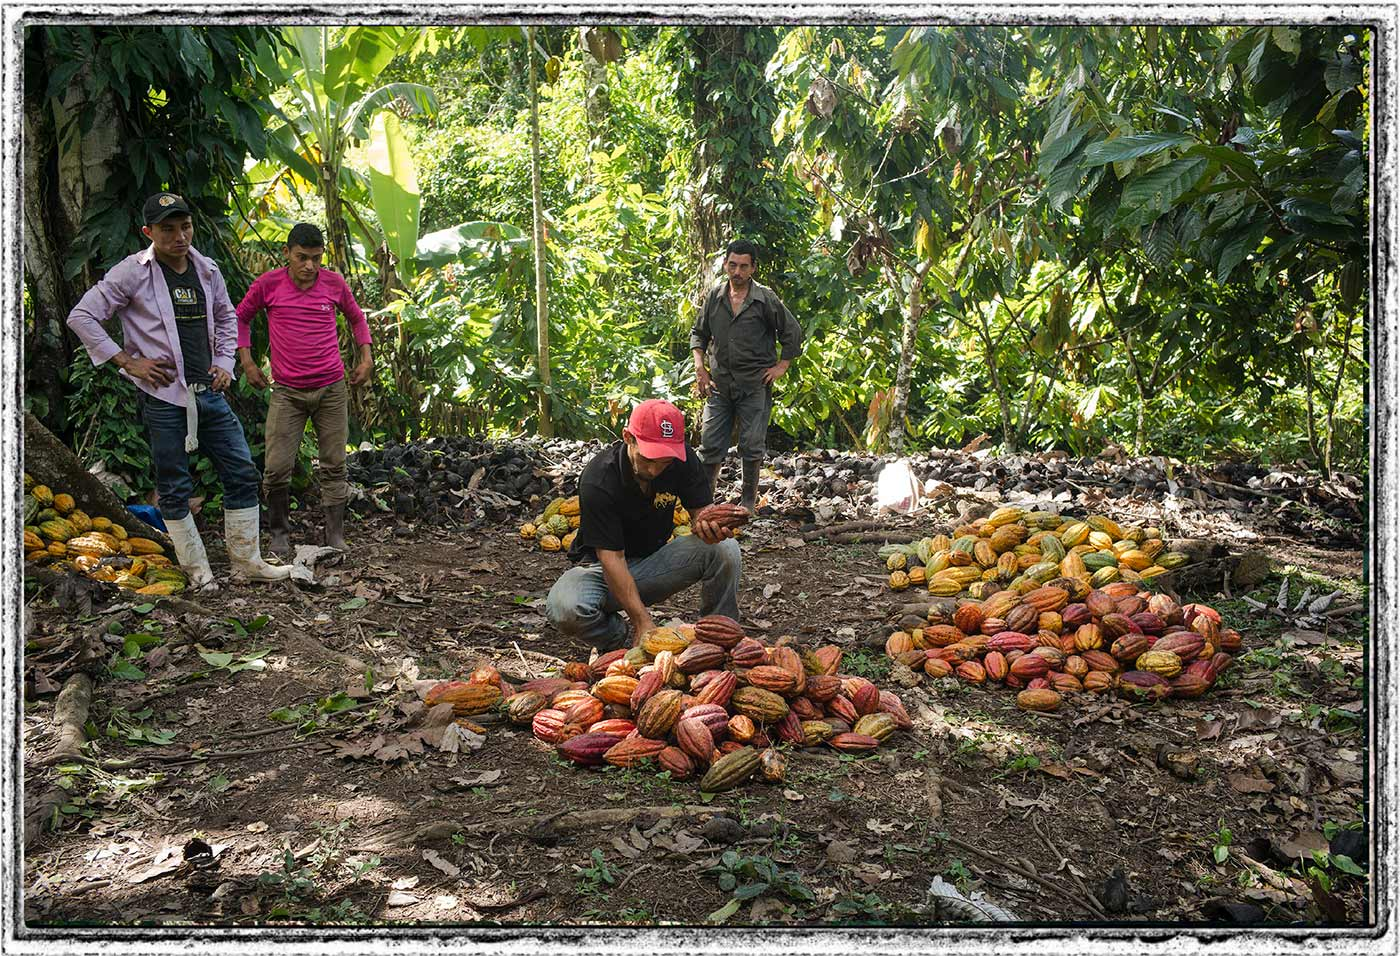 Juanito Flores. Working on the plantation